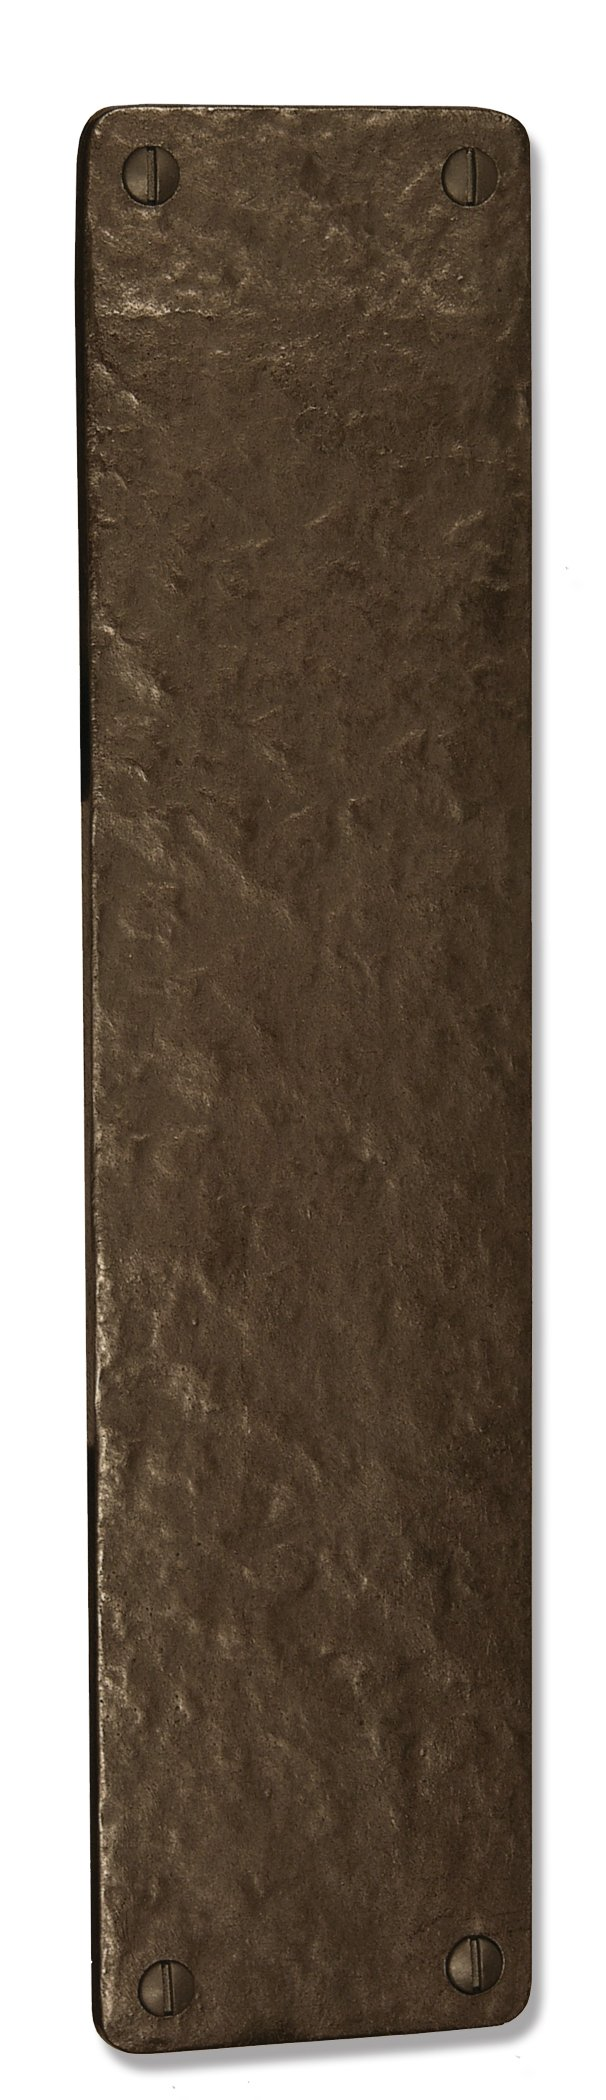 Coastal Bronze - 12'' Square Door Push Plate - Solid Bronze by Coastal Bronze